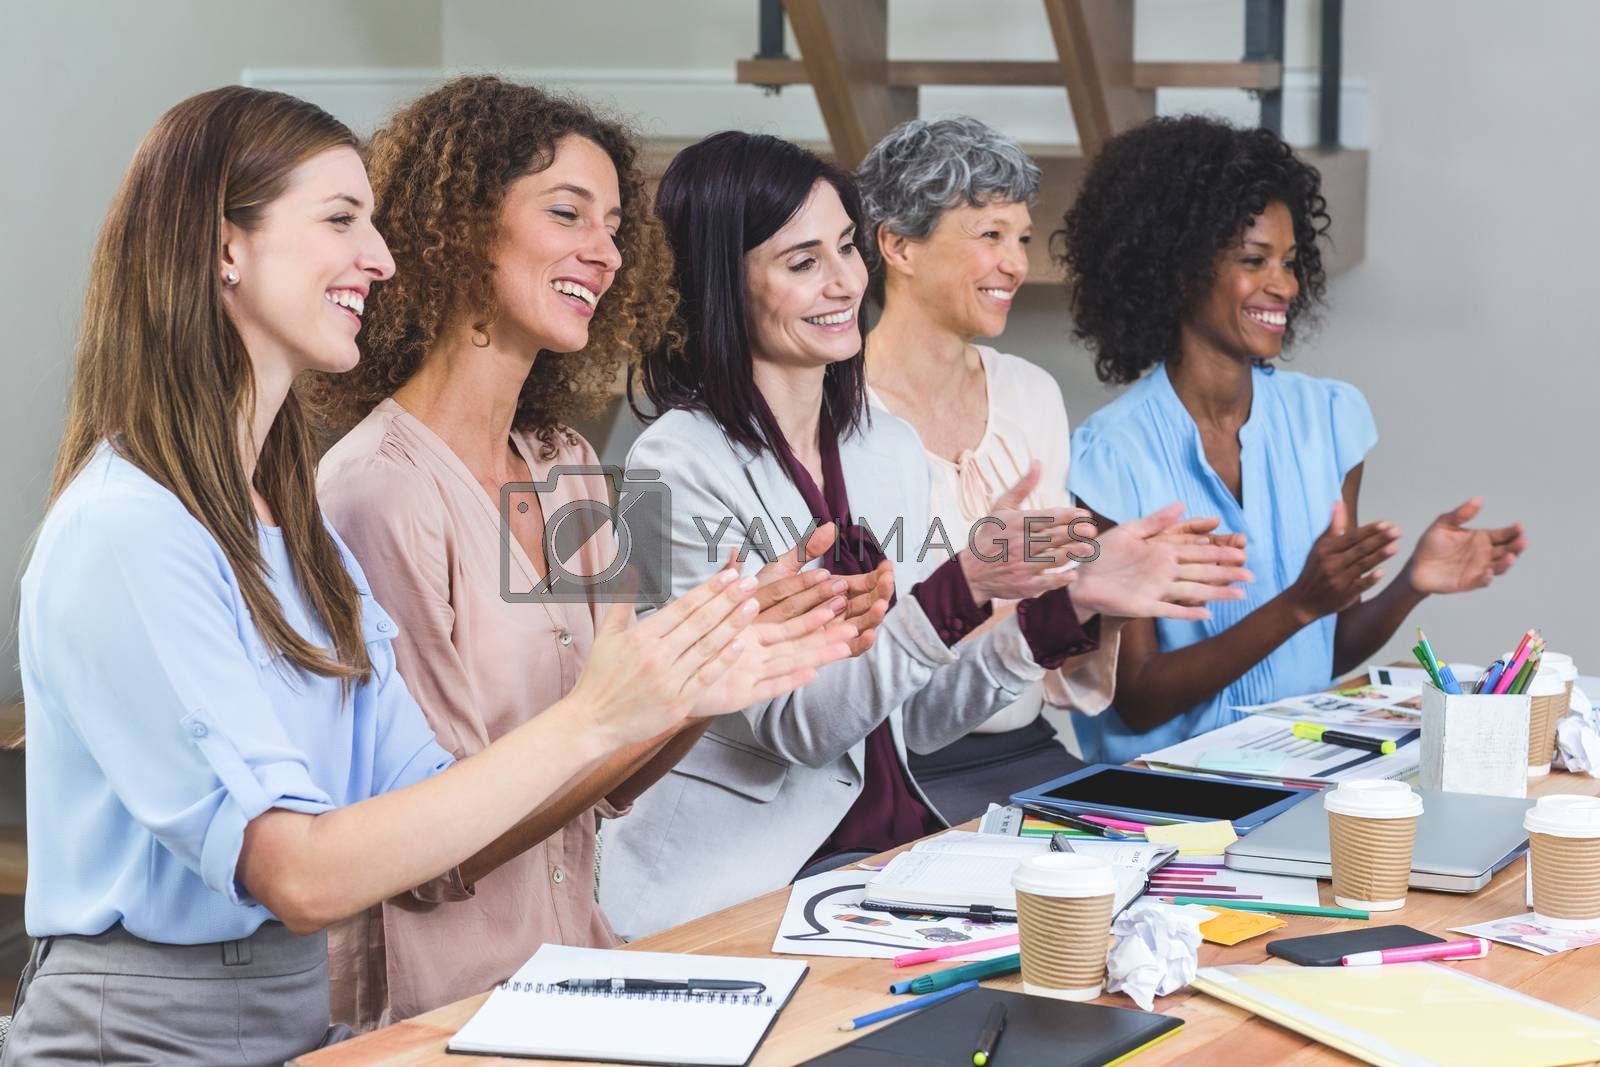 Royalty free image of Group of interior designers applauding in office by Wavebreakmedia